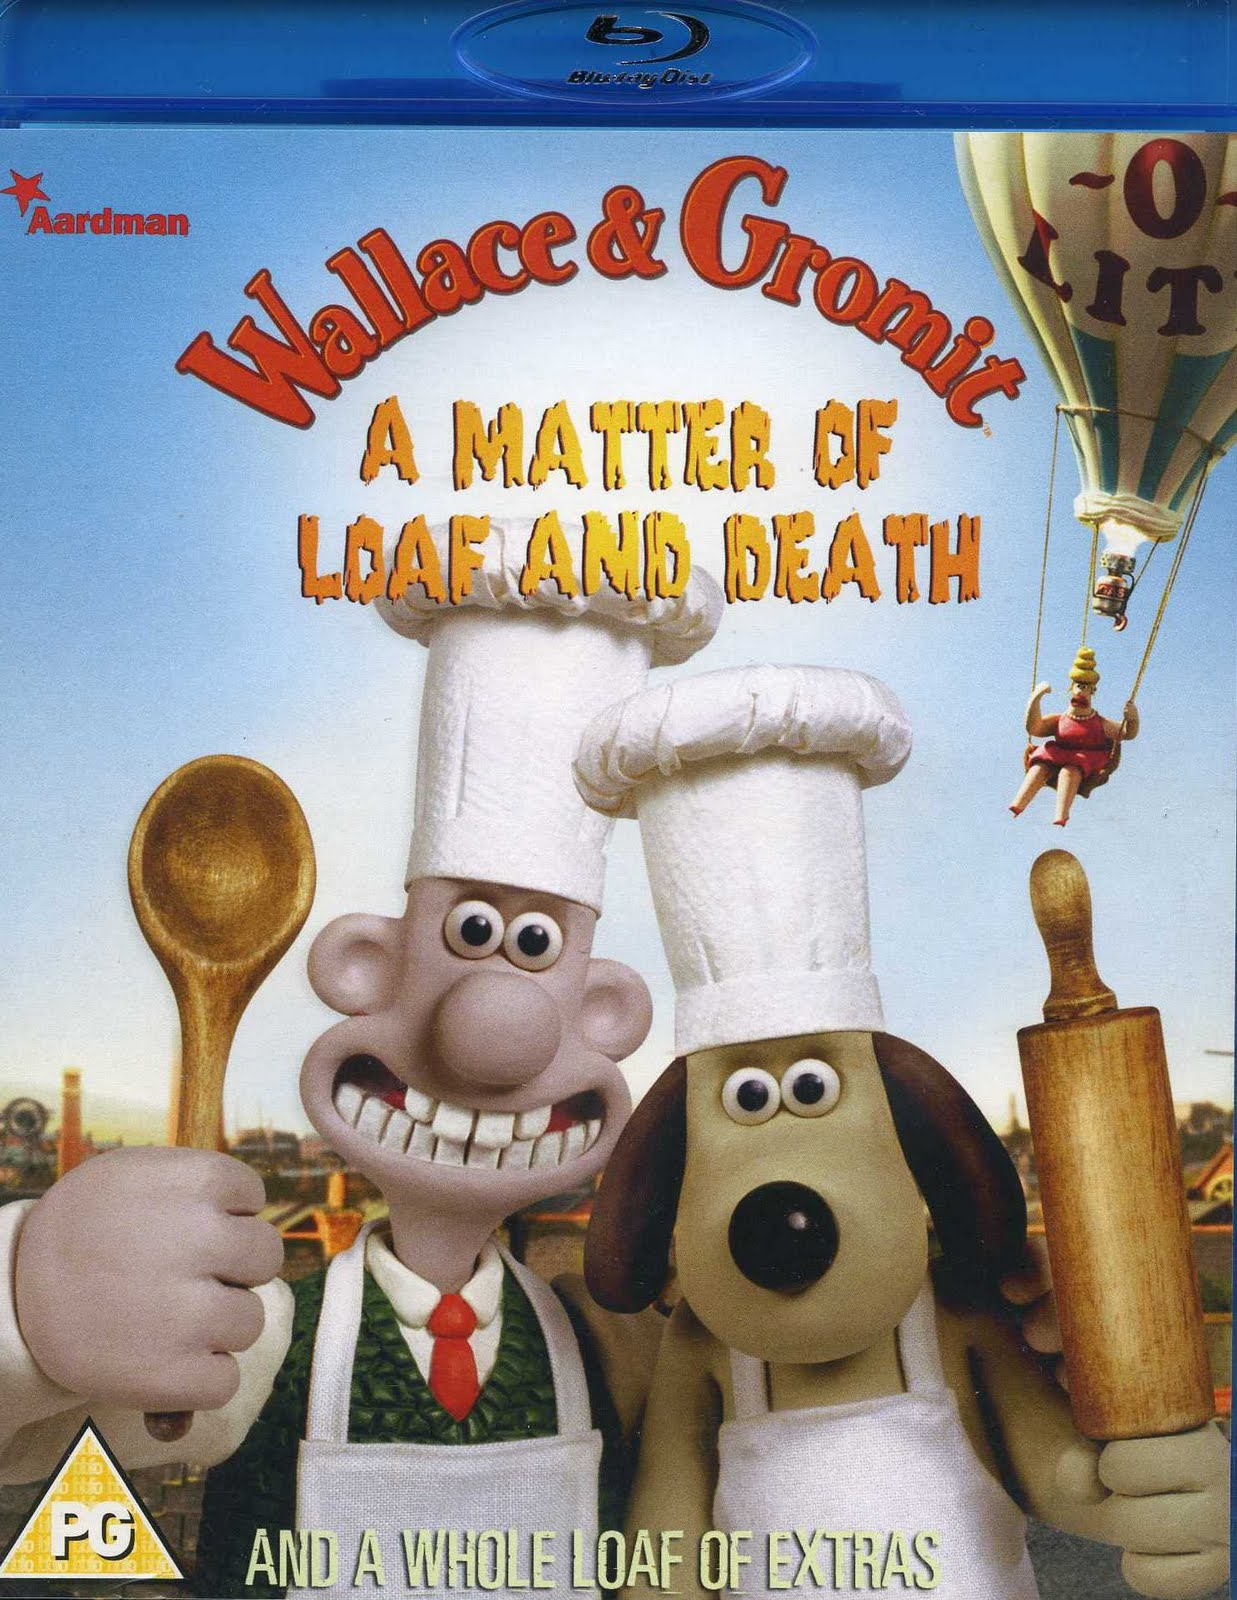 Stiahni si Filmy Kreslené Wallace a Gromit - Otazka chleba a smrti / Wallace & Gromit: A Matter of Loaf and Death (2008)(CZ) = CSFD 84%